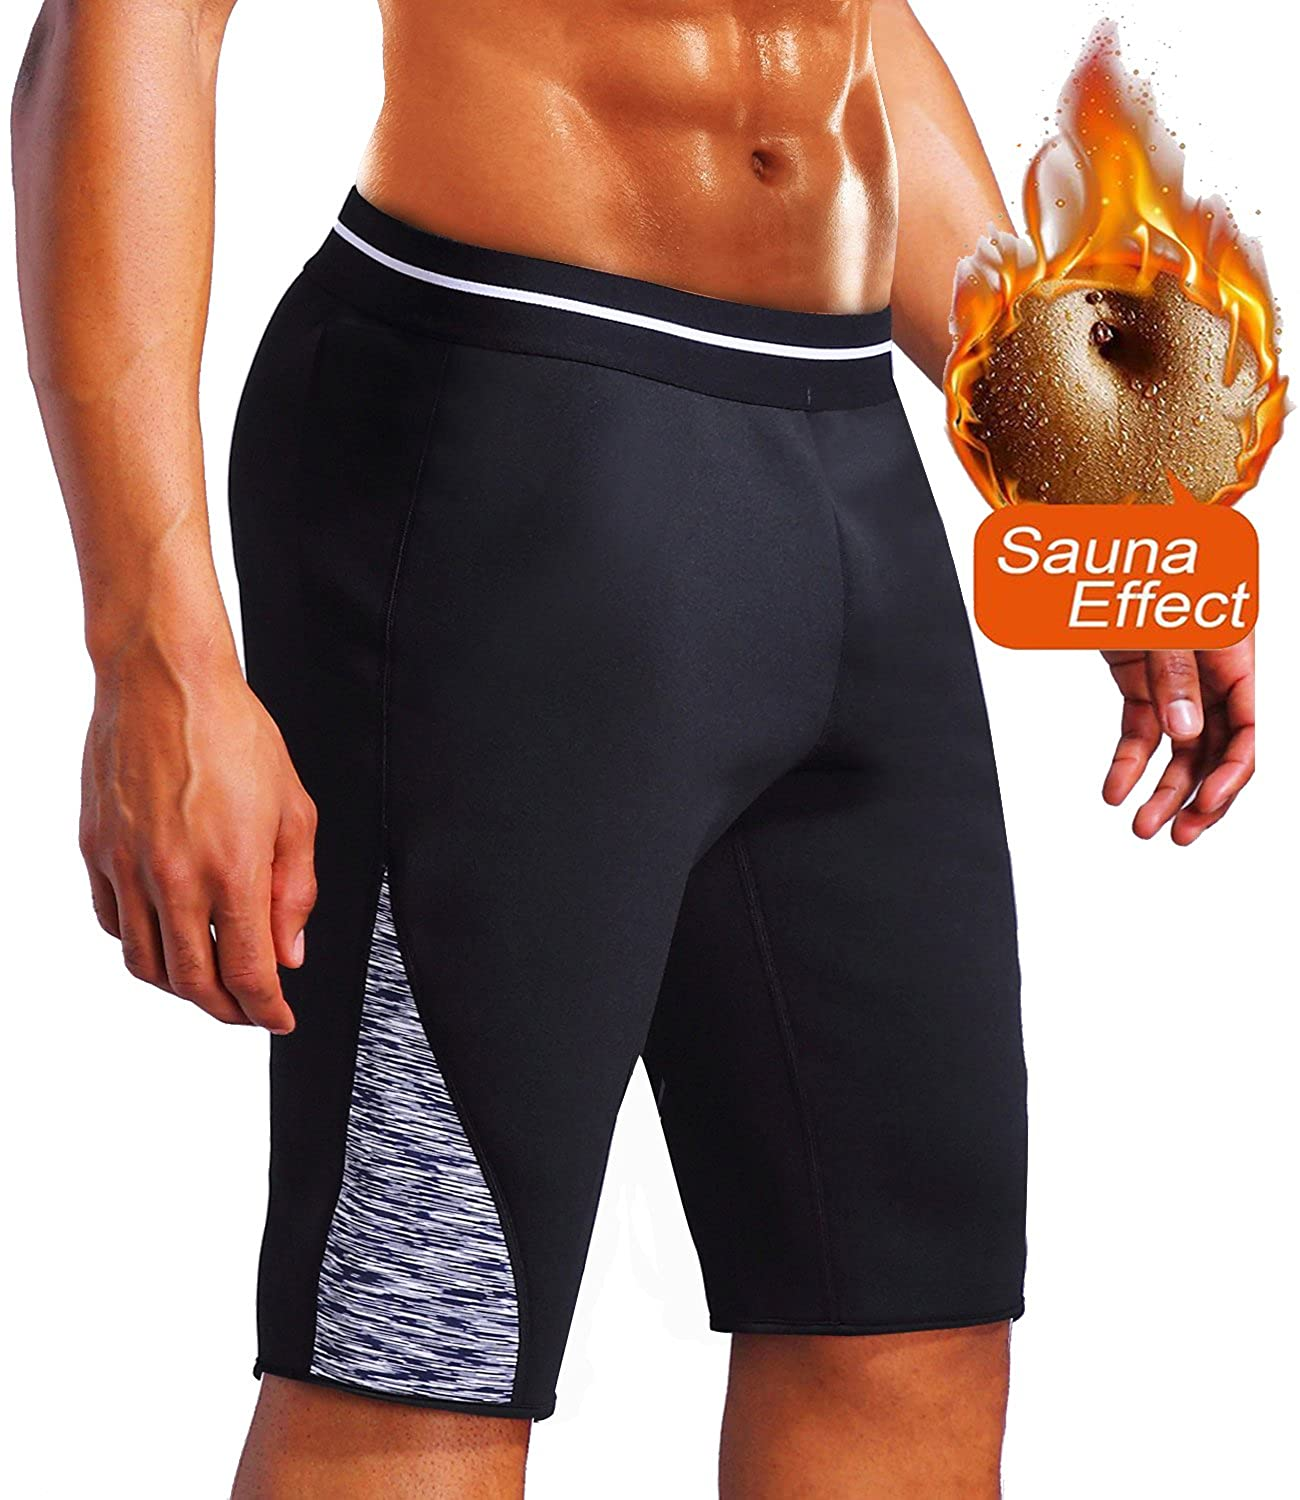 Men's Sauna Suit Hot Sweat Body Weight Gym Shorts Neoprene Athletic Yoga Shorts Workout Slim Pants for Weight Loss SFNMBMR9002